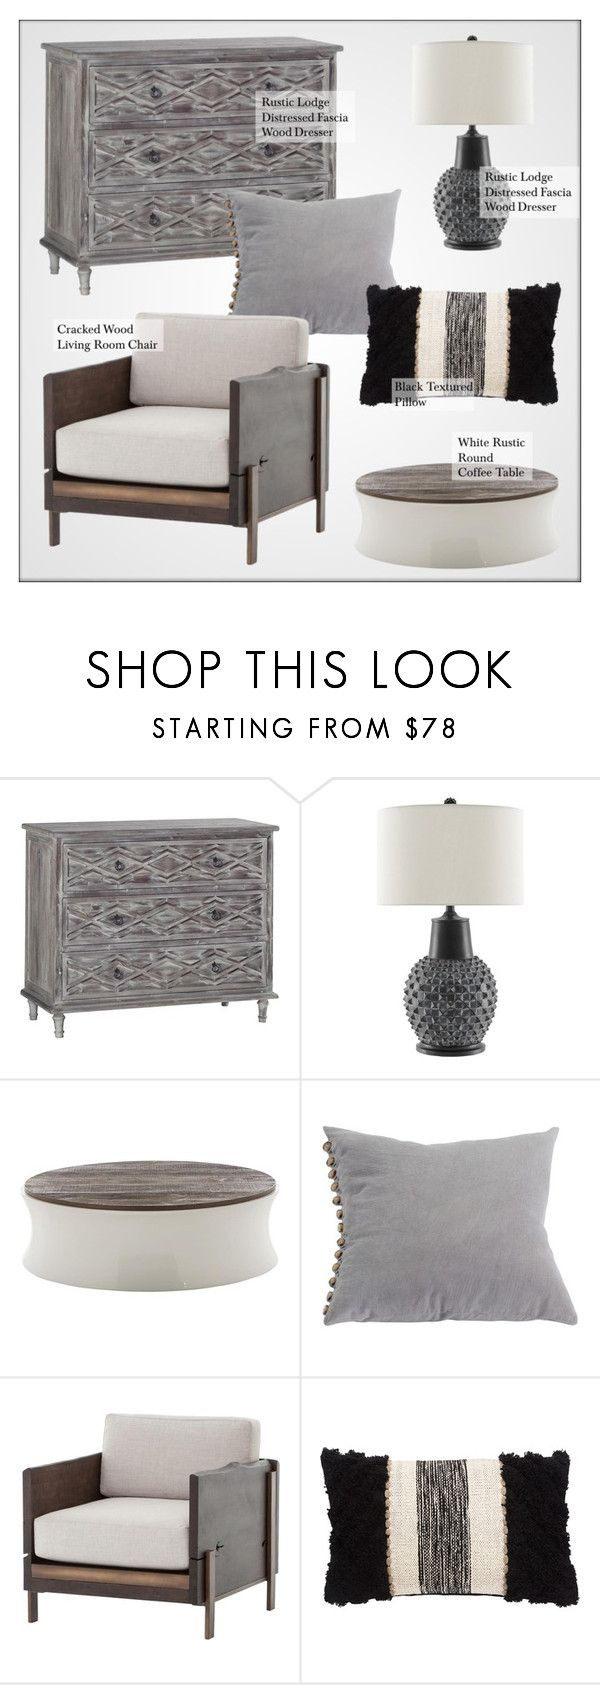 """""""Rustic Decor"""" by kathykuohome ❤ liked on Polyvore featuring interior, interiors, interior design, home, home decor, interior decorating, rustic, livingroomdecor and rusticlodge"""